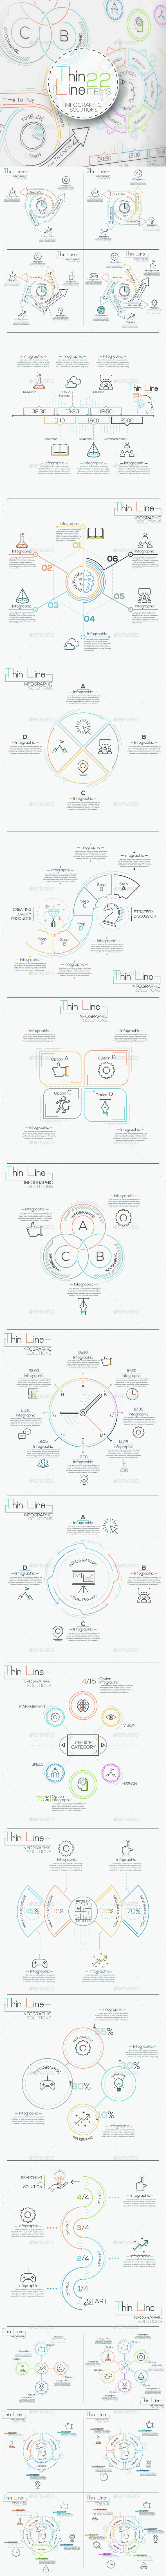 Thin Line Infographic Set Design Template - Infographics Template PSD, Vector EPS, AI Illustrator. Download here: https://graphicriver.net/item/thin-line-infographic-set/16930311?s_rank=4&ref=yinkira